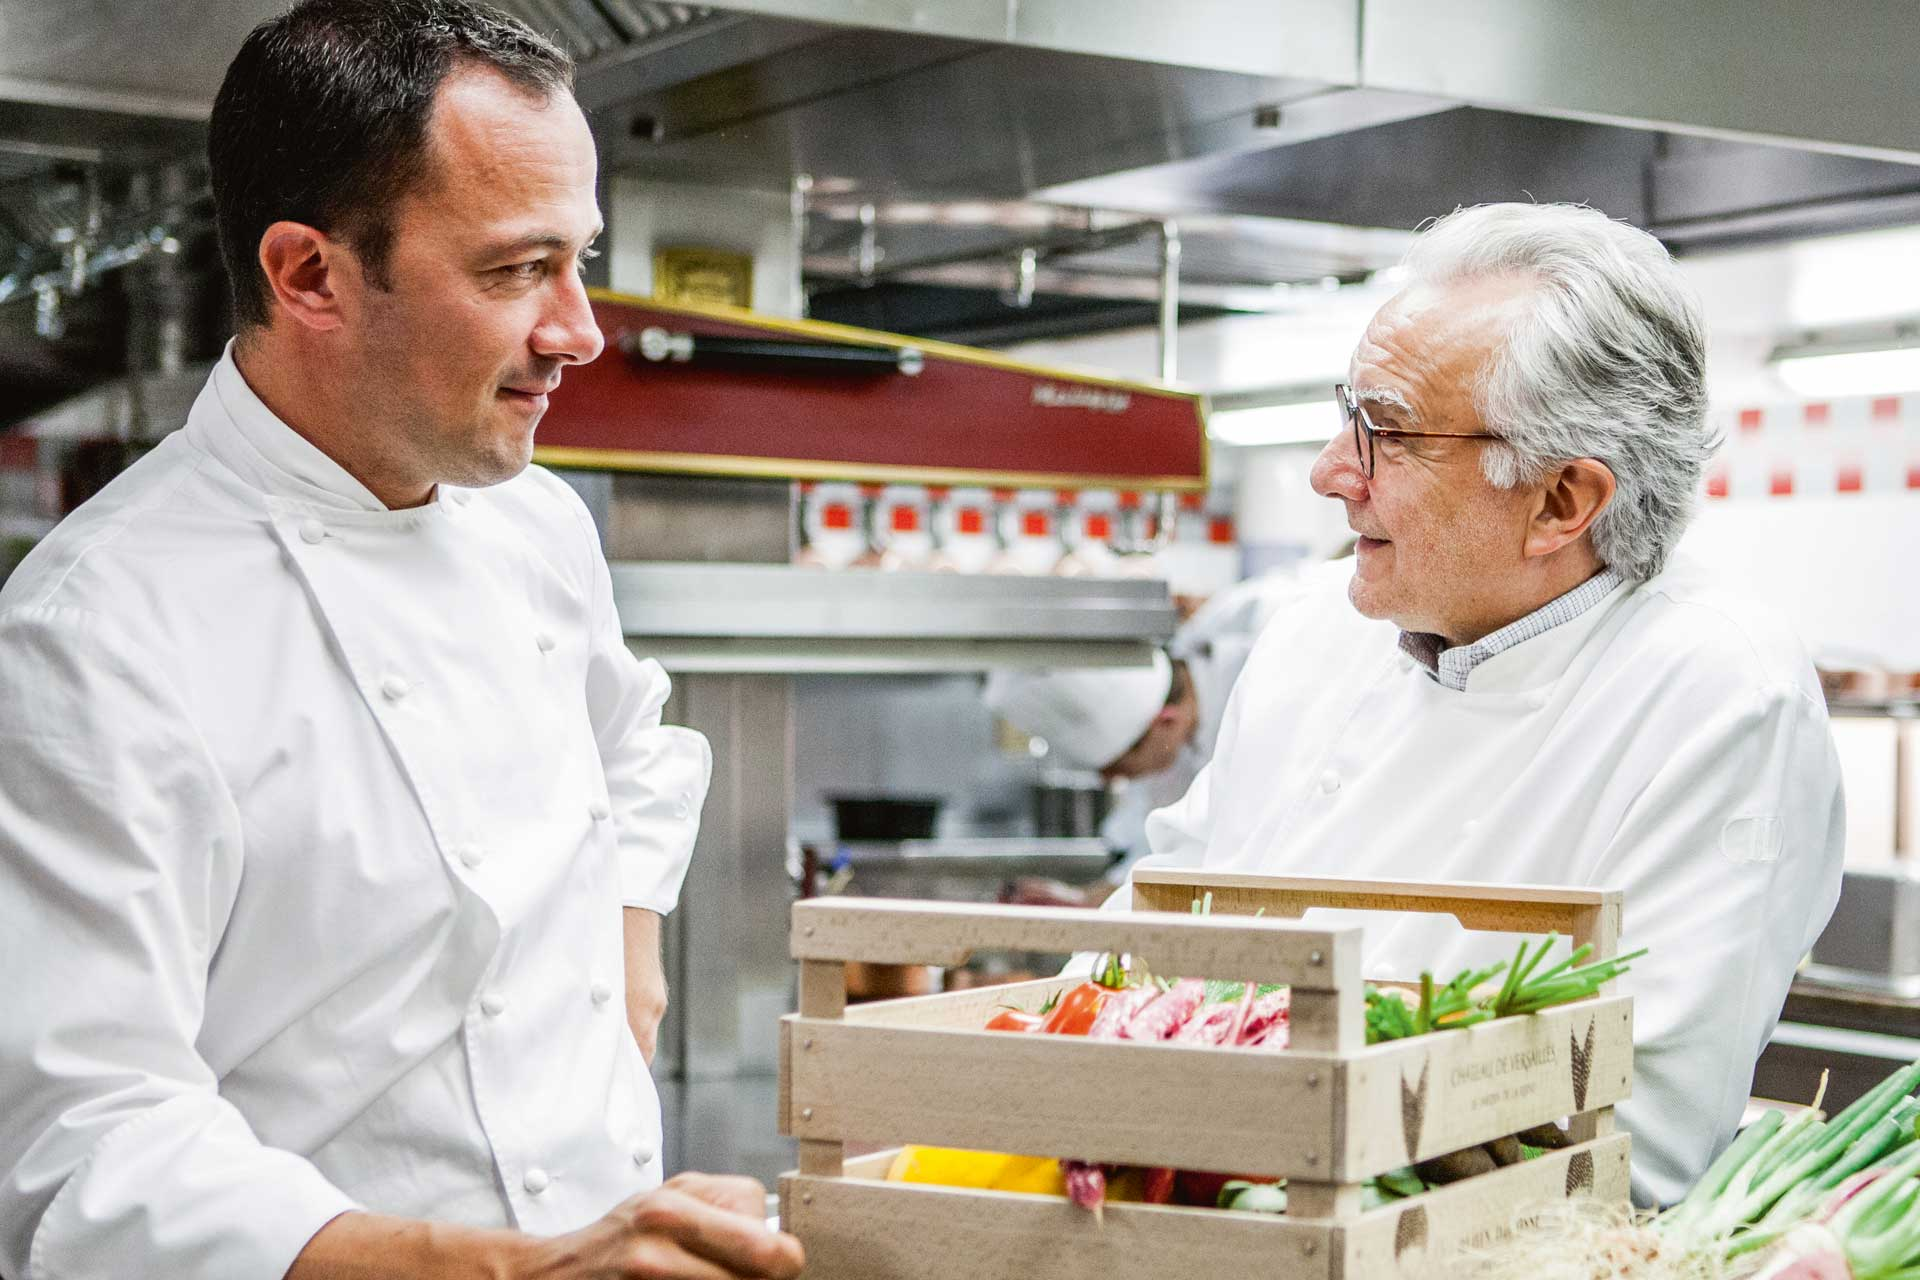 Michelin-starred chefs Romain Meder and Alain Ducasse in the kitchen